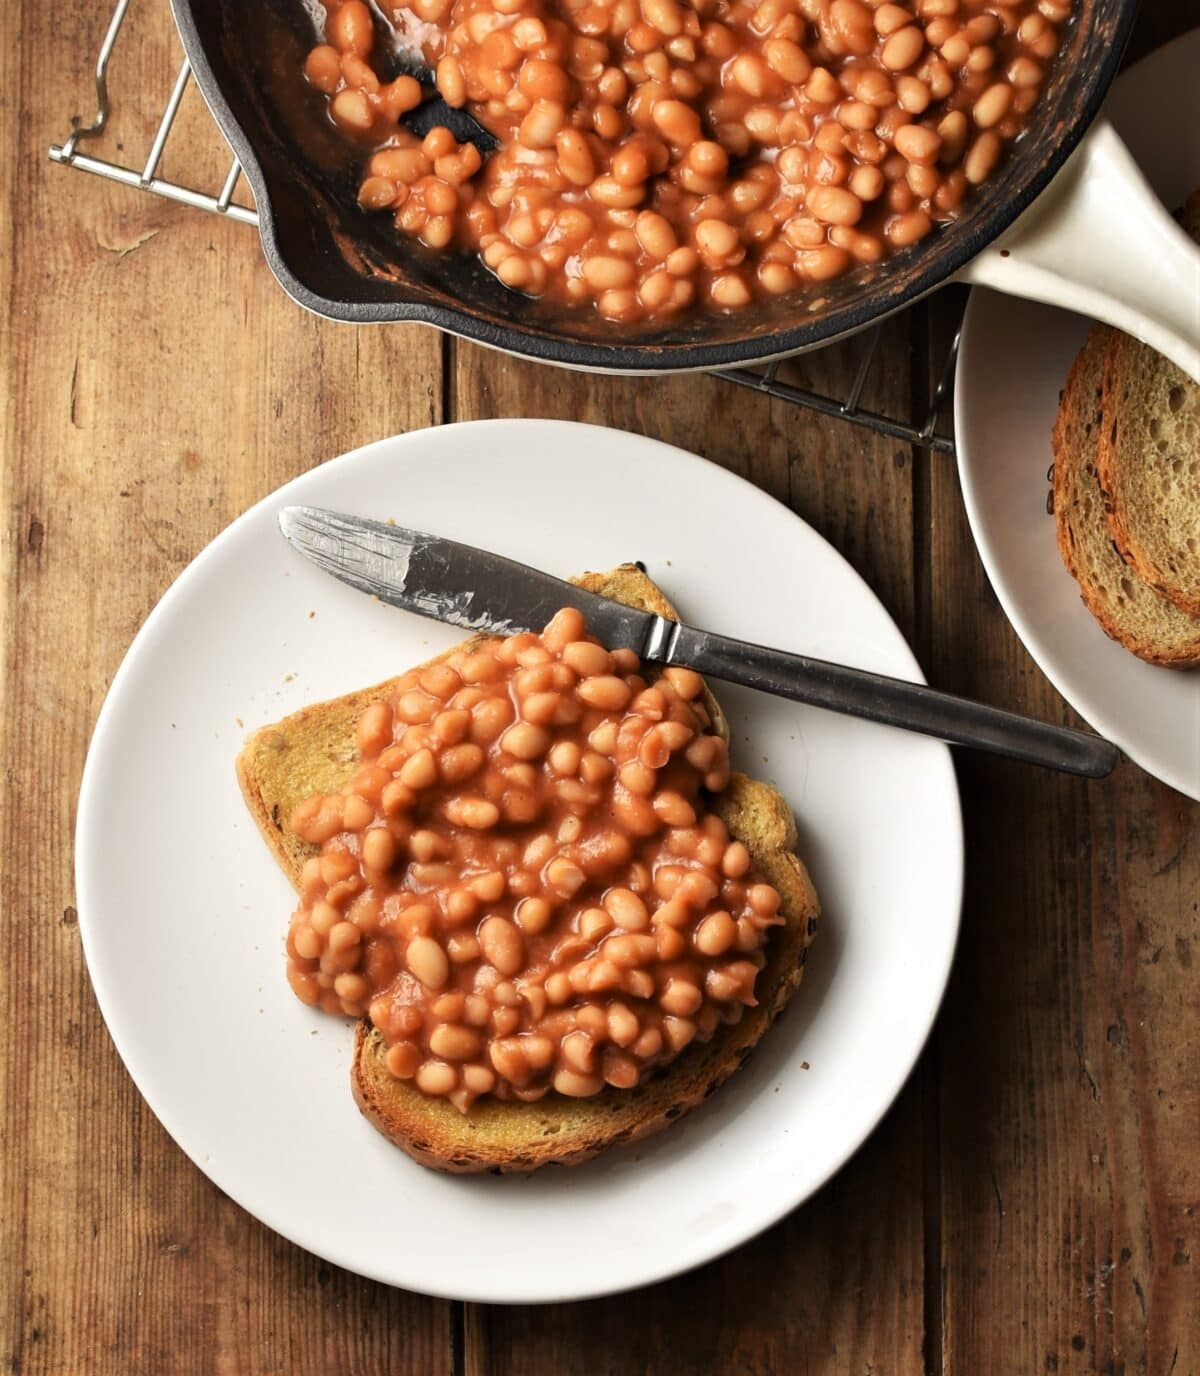 Baked beans on top of toast on white plate with knife, with beans in skillet in background.